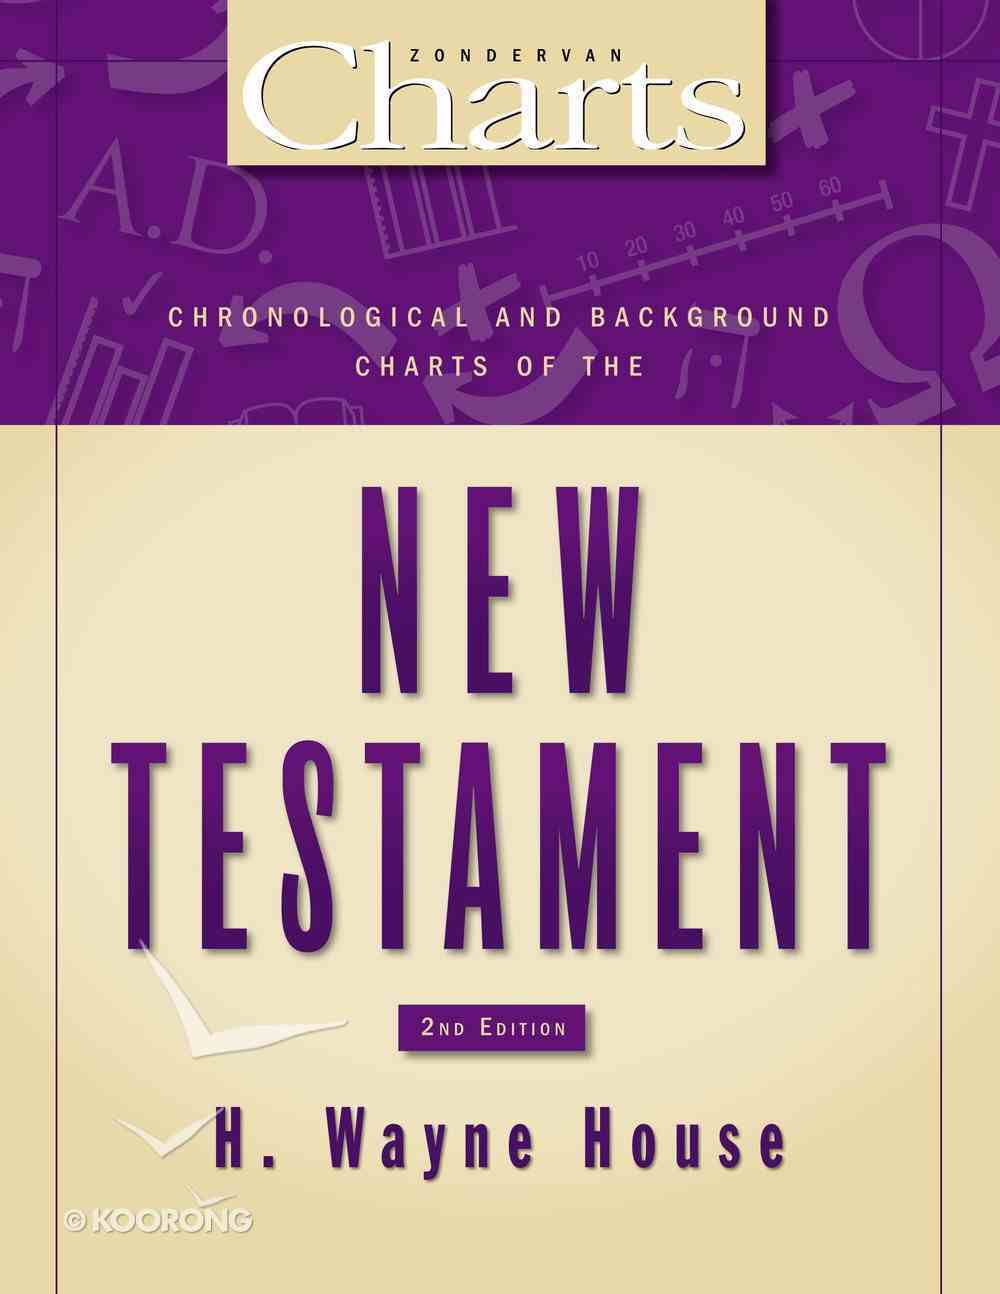 Chronological and Background Charts of the New Testament (Zondervan Charts Series) Paperback